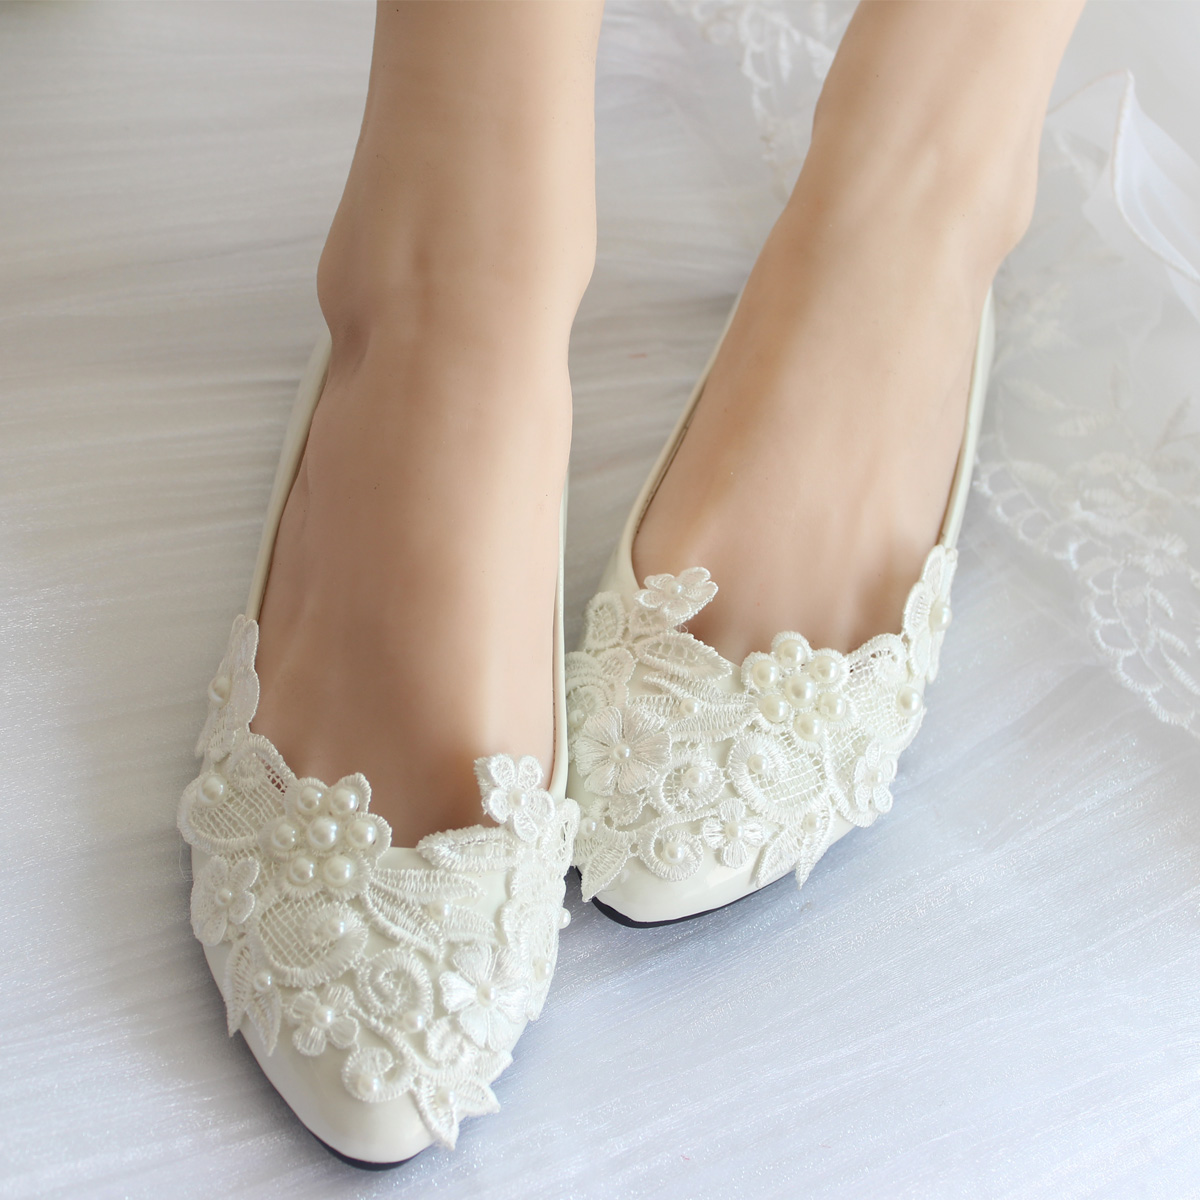 Lace Wedding Shoes Low Heel: Pearl Lace Wedding Shoes White Handmade Bridal/ Bridesmaid